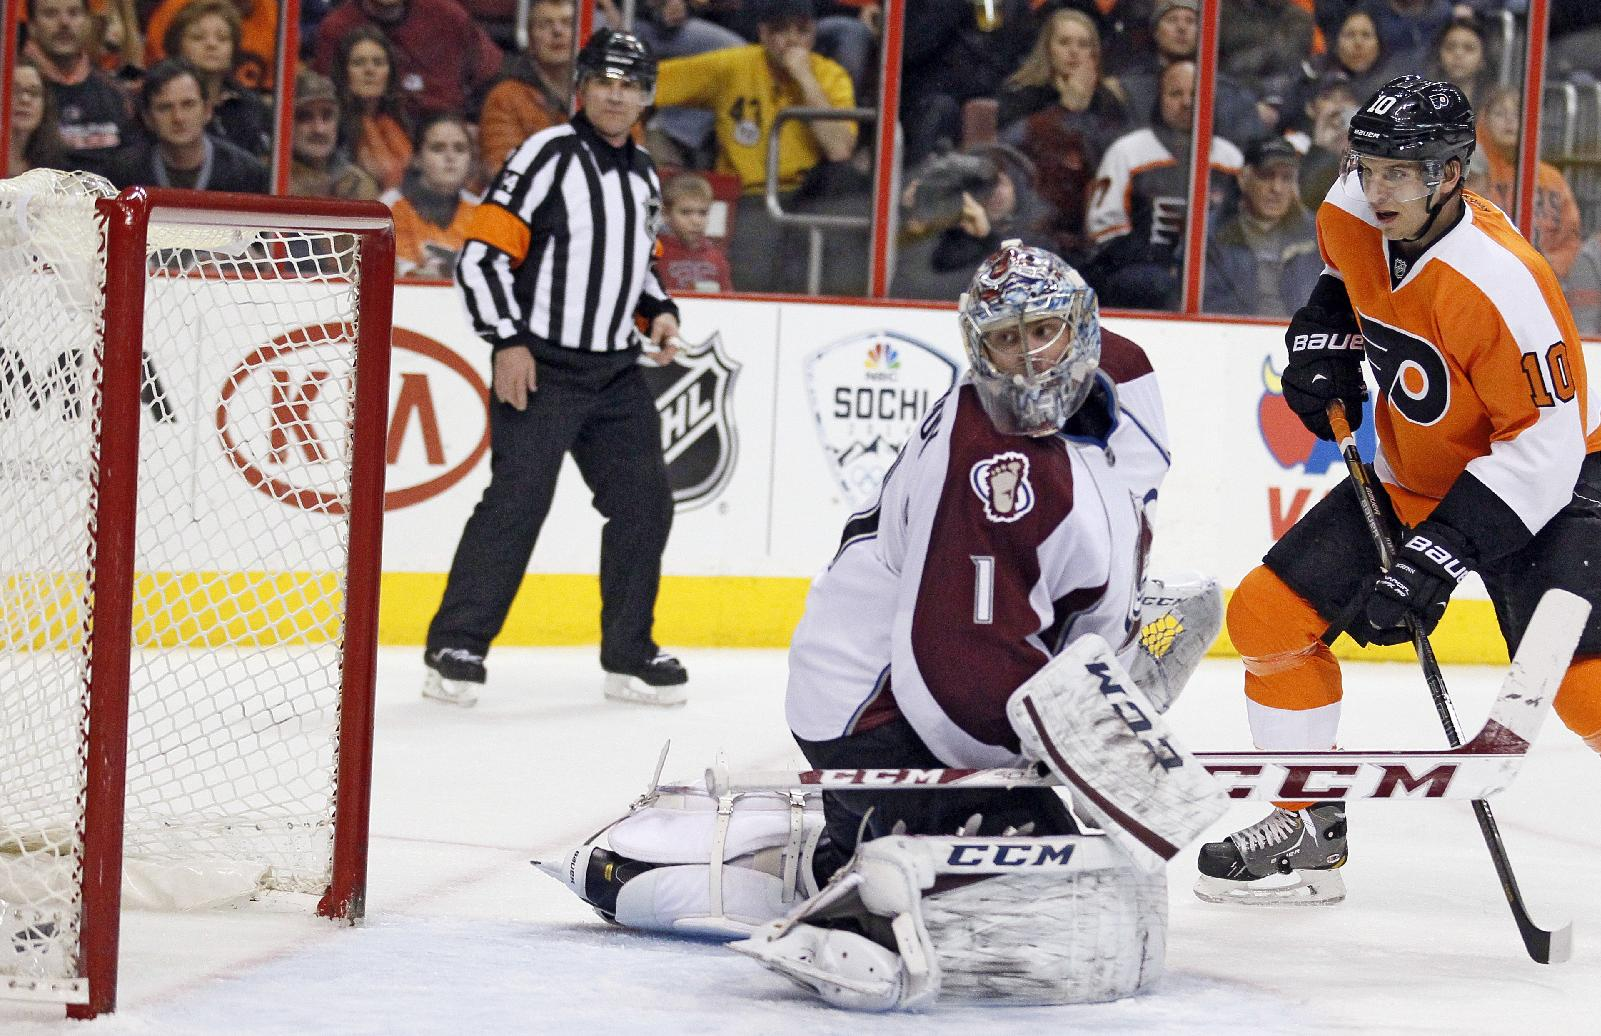 Colorado Avalanche goalie Semyon Varlamov looks back at the puck in the net, lower left, shot by Philadelphia Flyers' Mark Streit, not pictured, as Brayden Schenn, right, looks on during the second period of an NHL hockey game, Thursday, Feb. 6, 2014, in Philadelphia